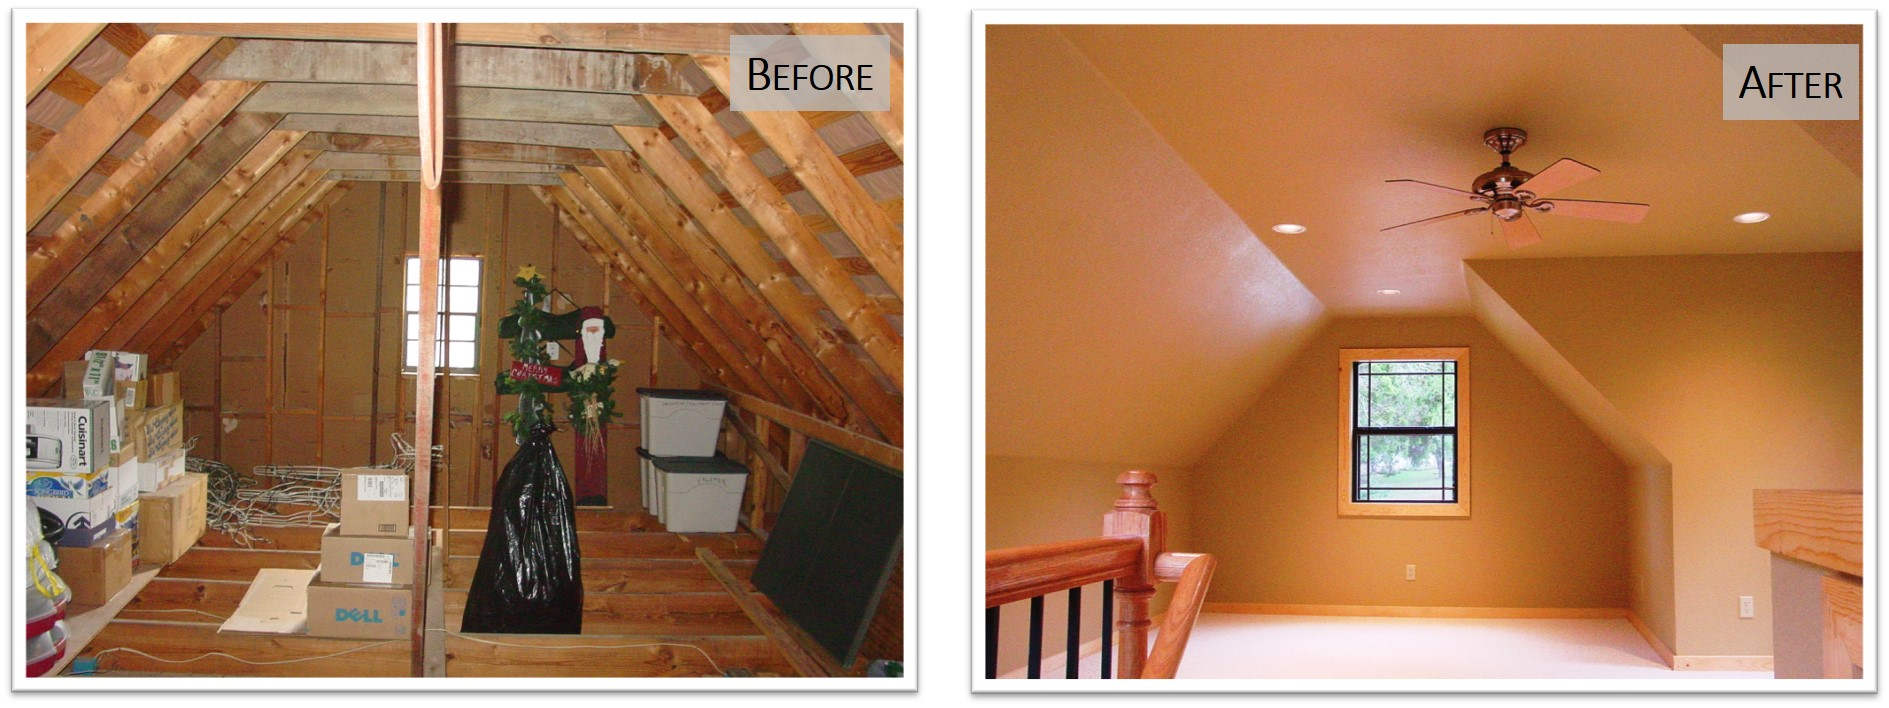 Remodels & Additions - View some of our remodels and additions.